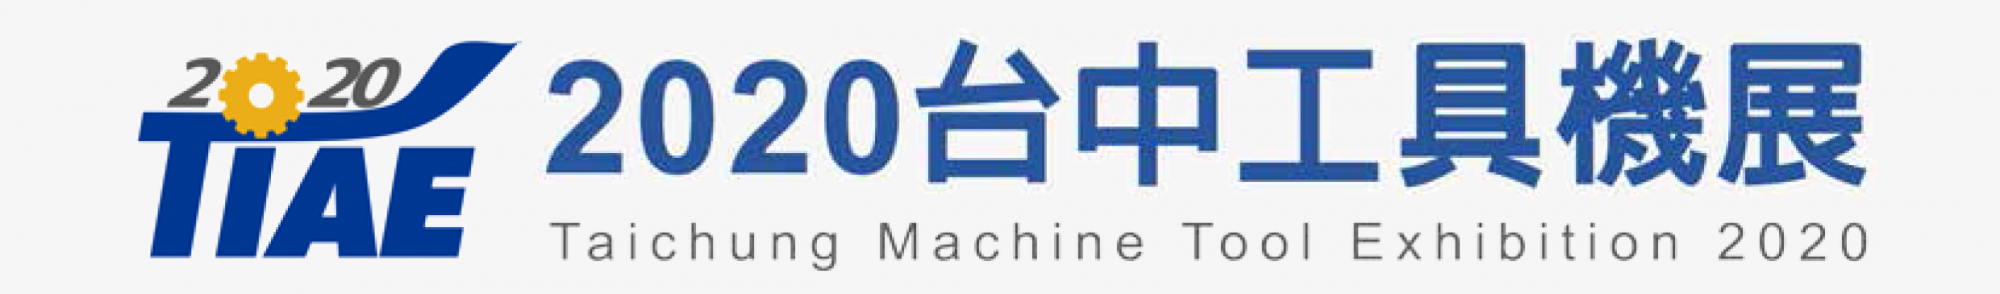 2020 taichung machine tool exhibition tiae